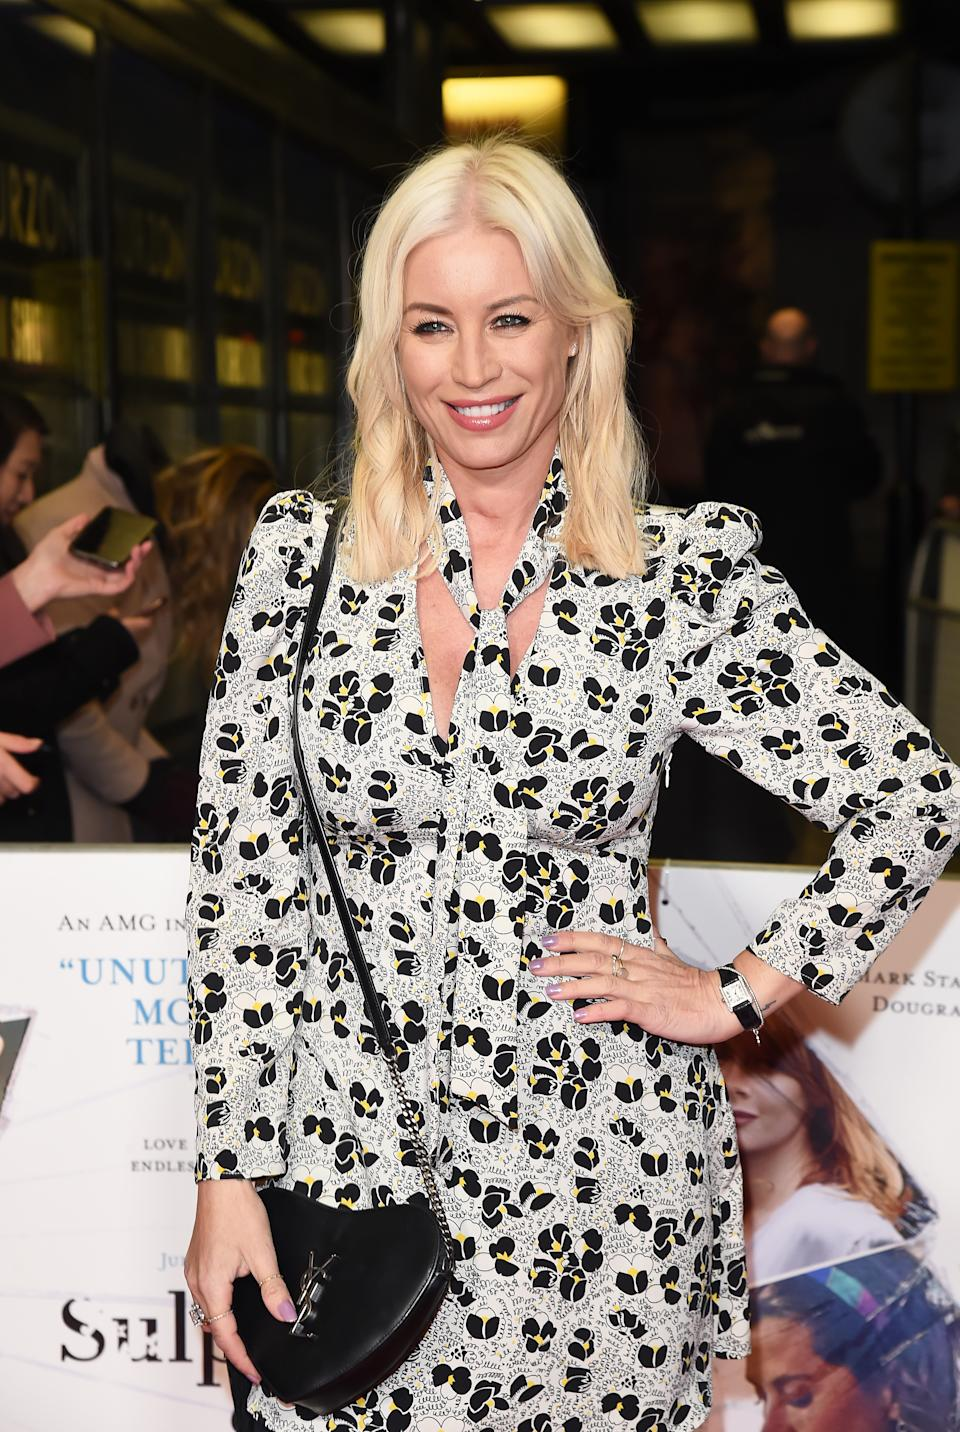 Denise van Outen attends the World Premiere of Sulphur And White on February 27 2020 in London (Photo by David M. Benett/Dave Benett/WireImage)